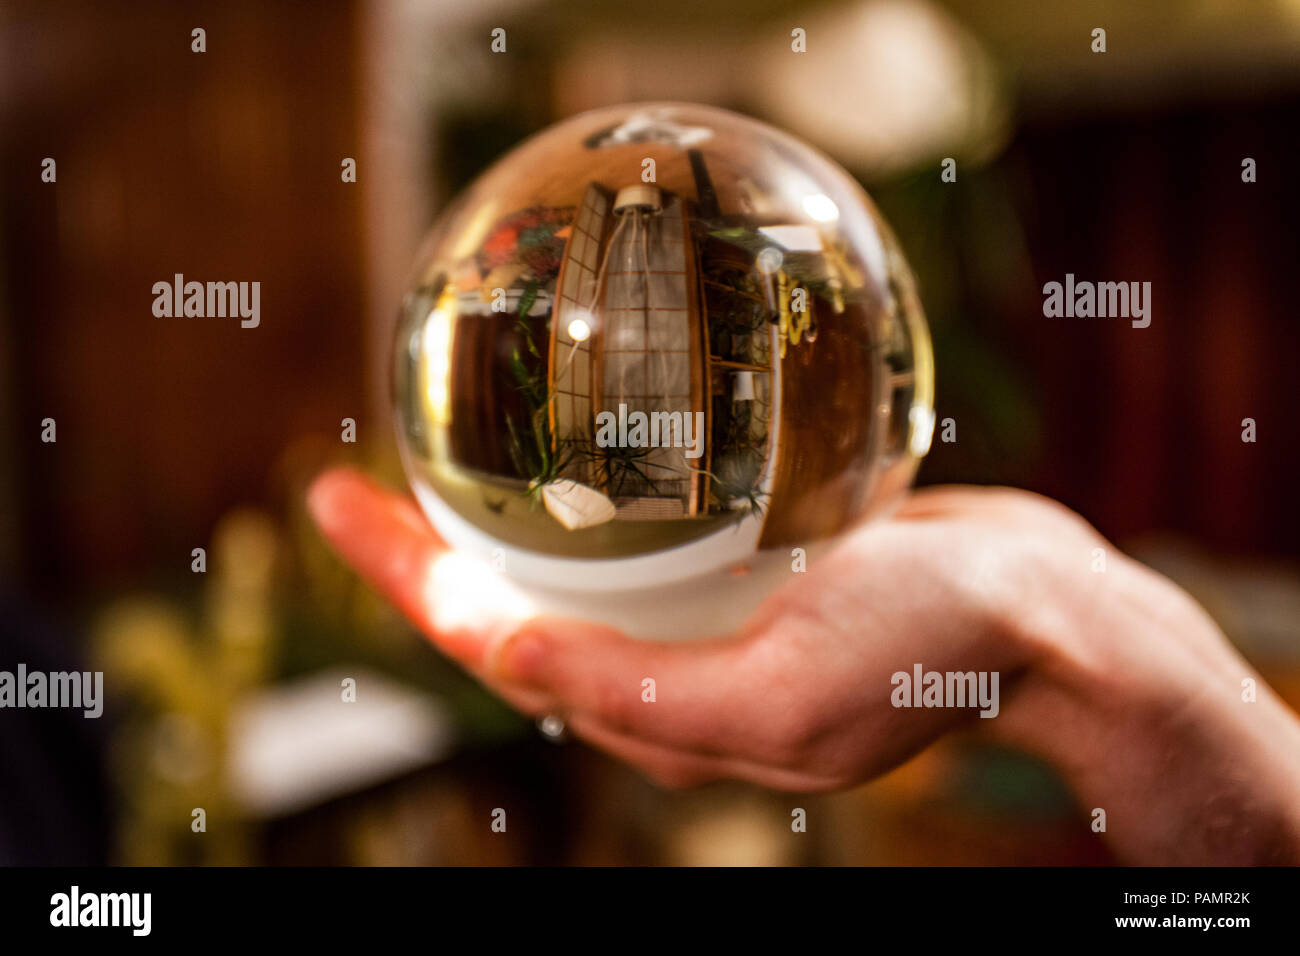 Hand holding a crystal ball in which appears the upside-down reflection of a living room full of plants - Stock Image